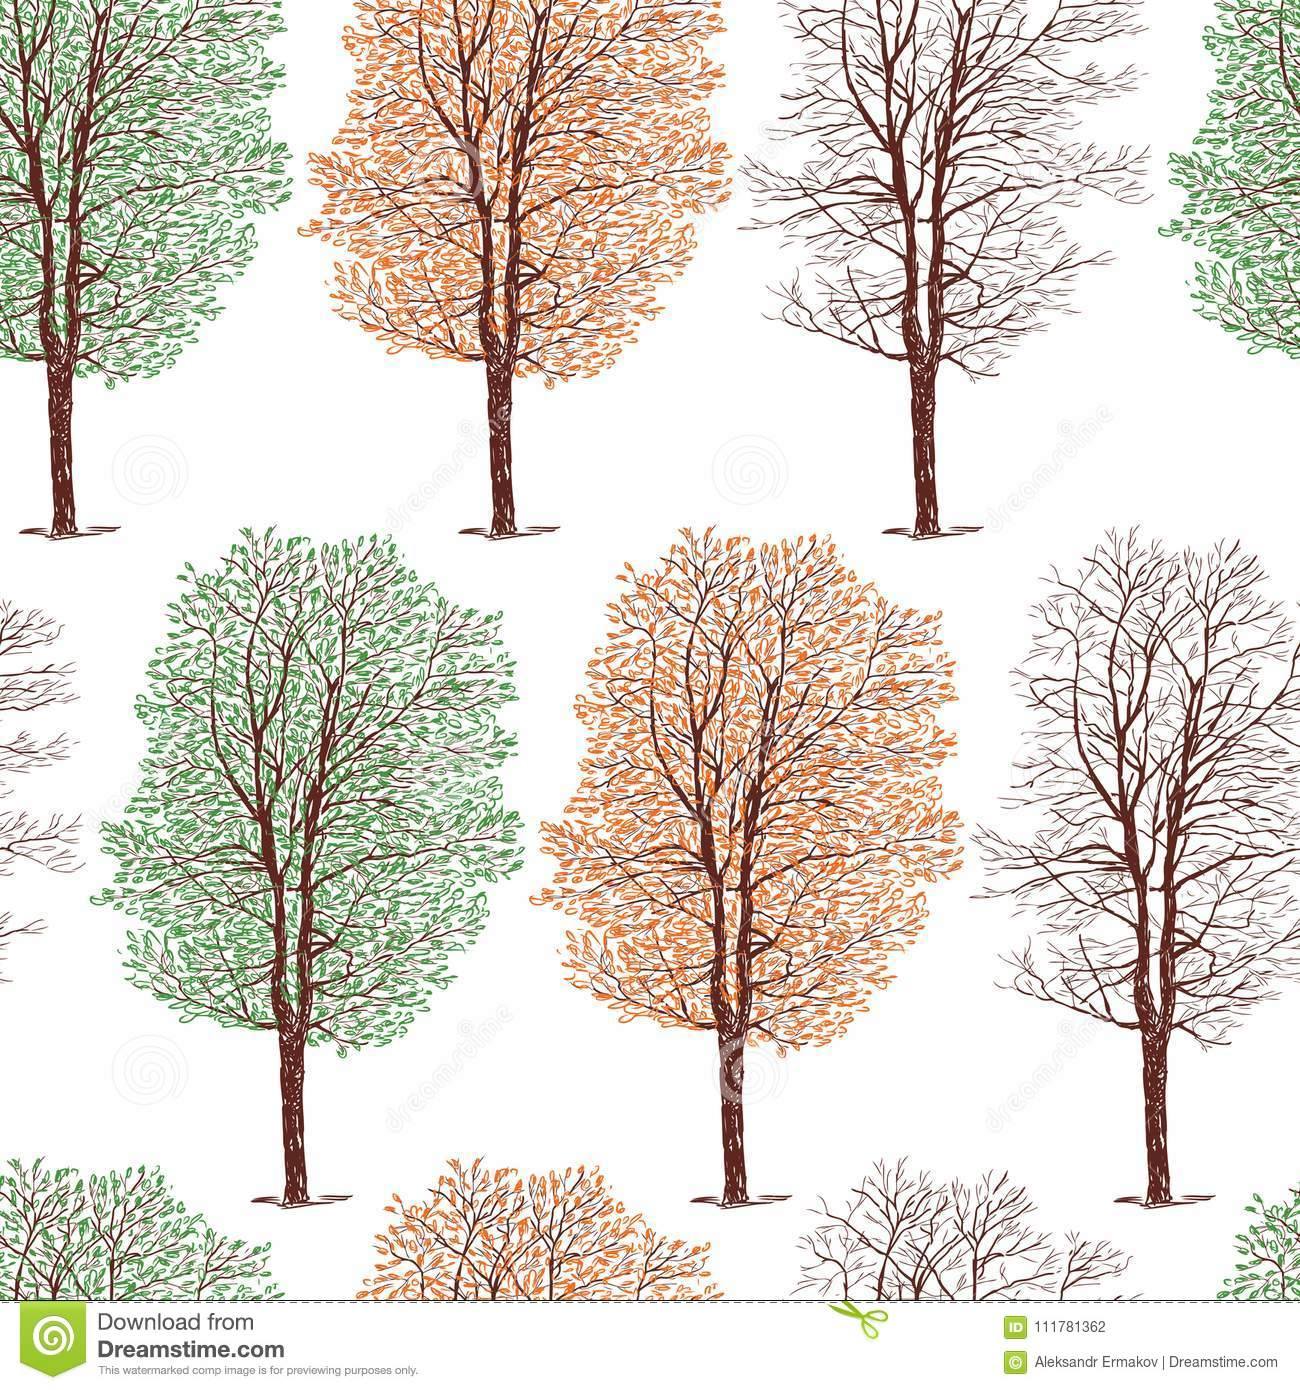 Pattern of the trees in the different seasons